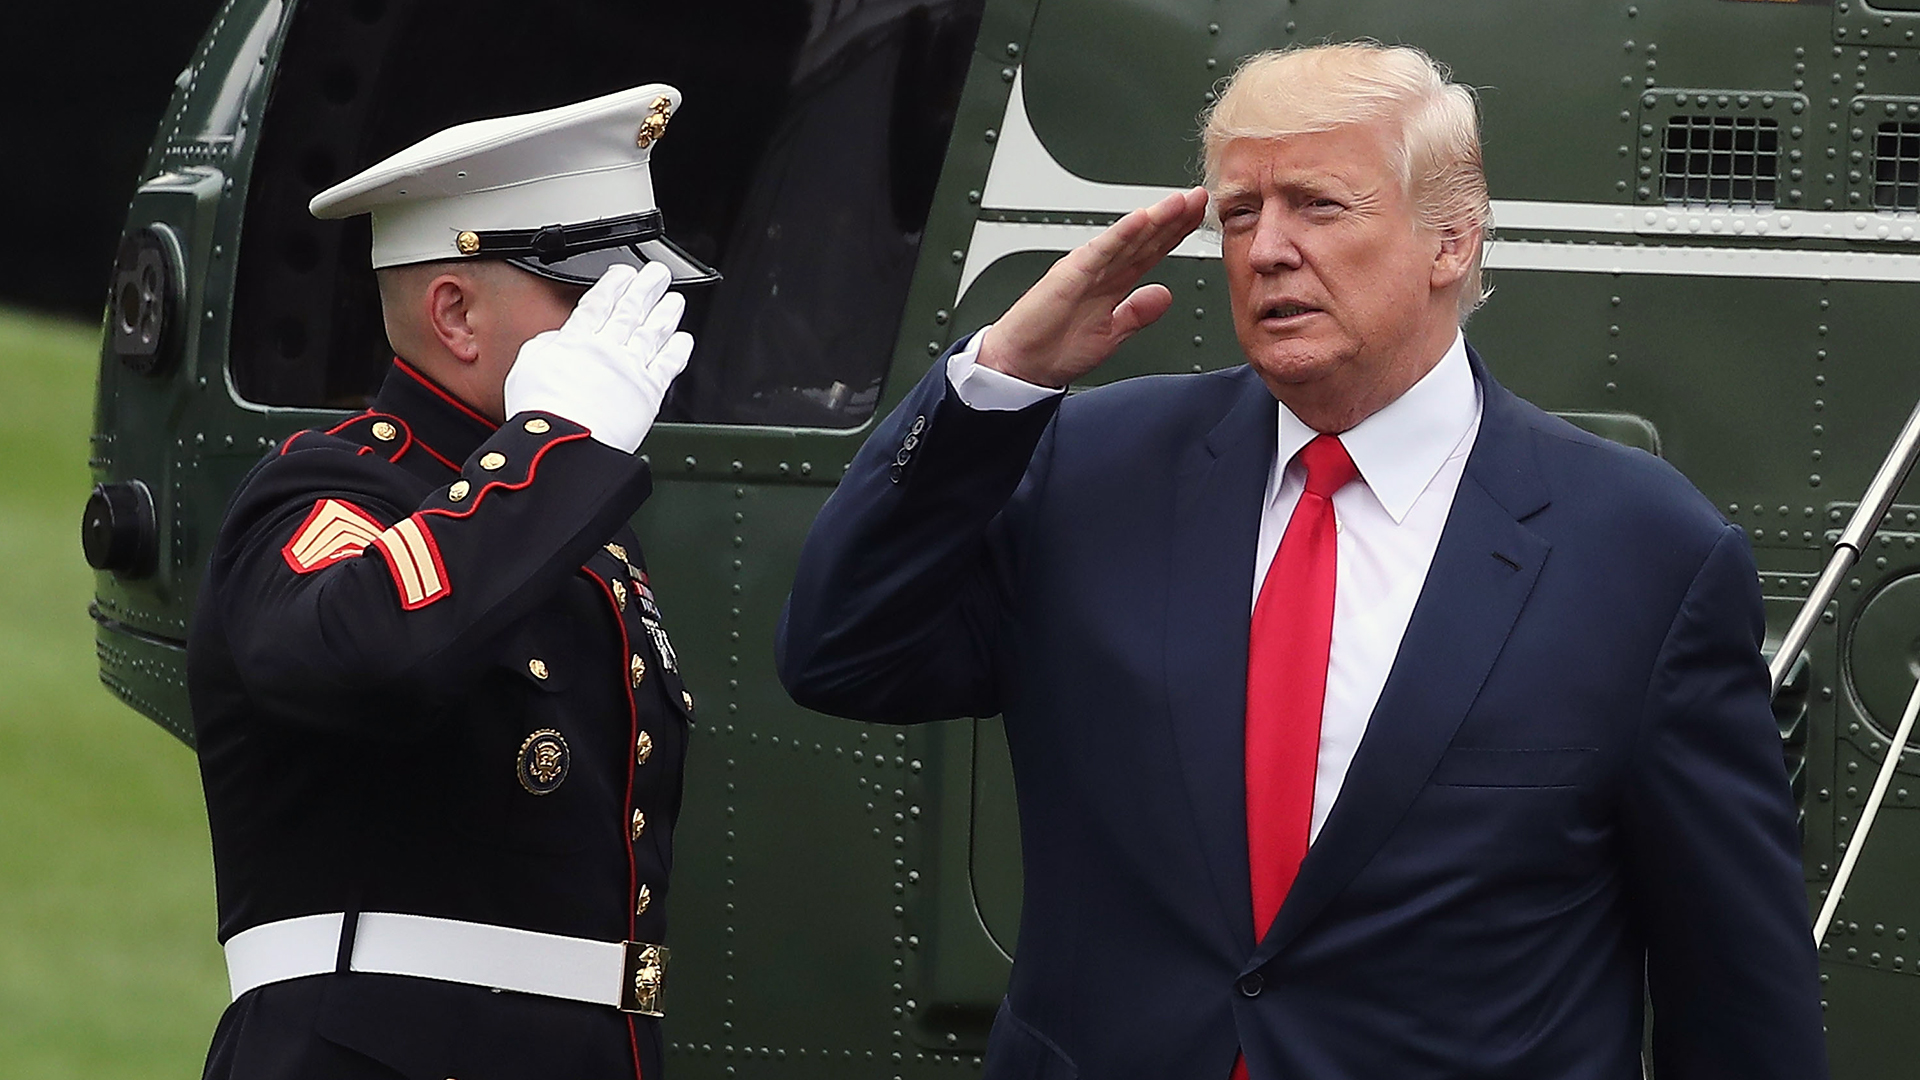 President Trump salutes Marine off helicopter-159532.jpg39967964